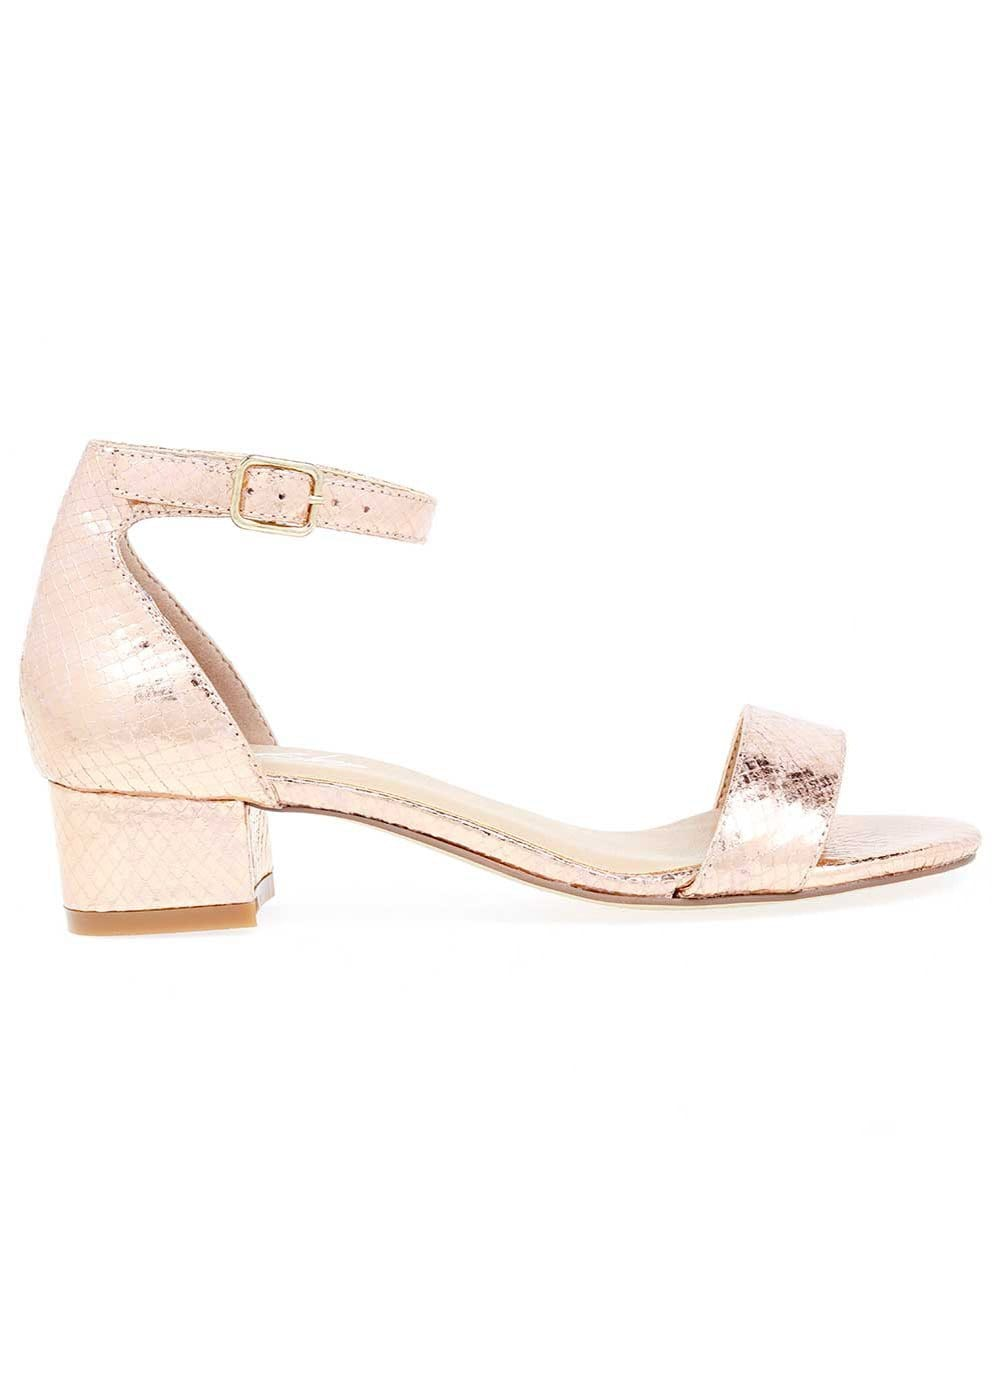 TeenzShop Girls Rose Gold Small Block Heel Sandal